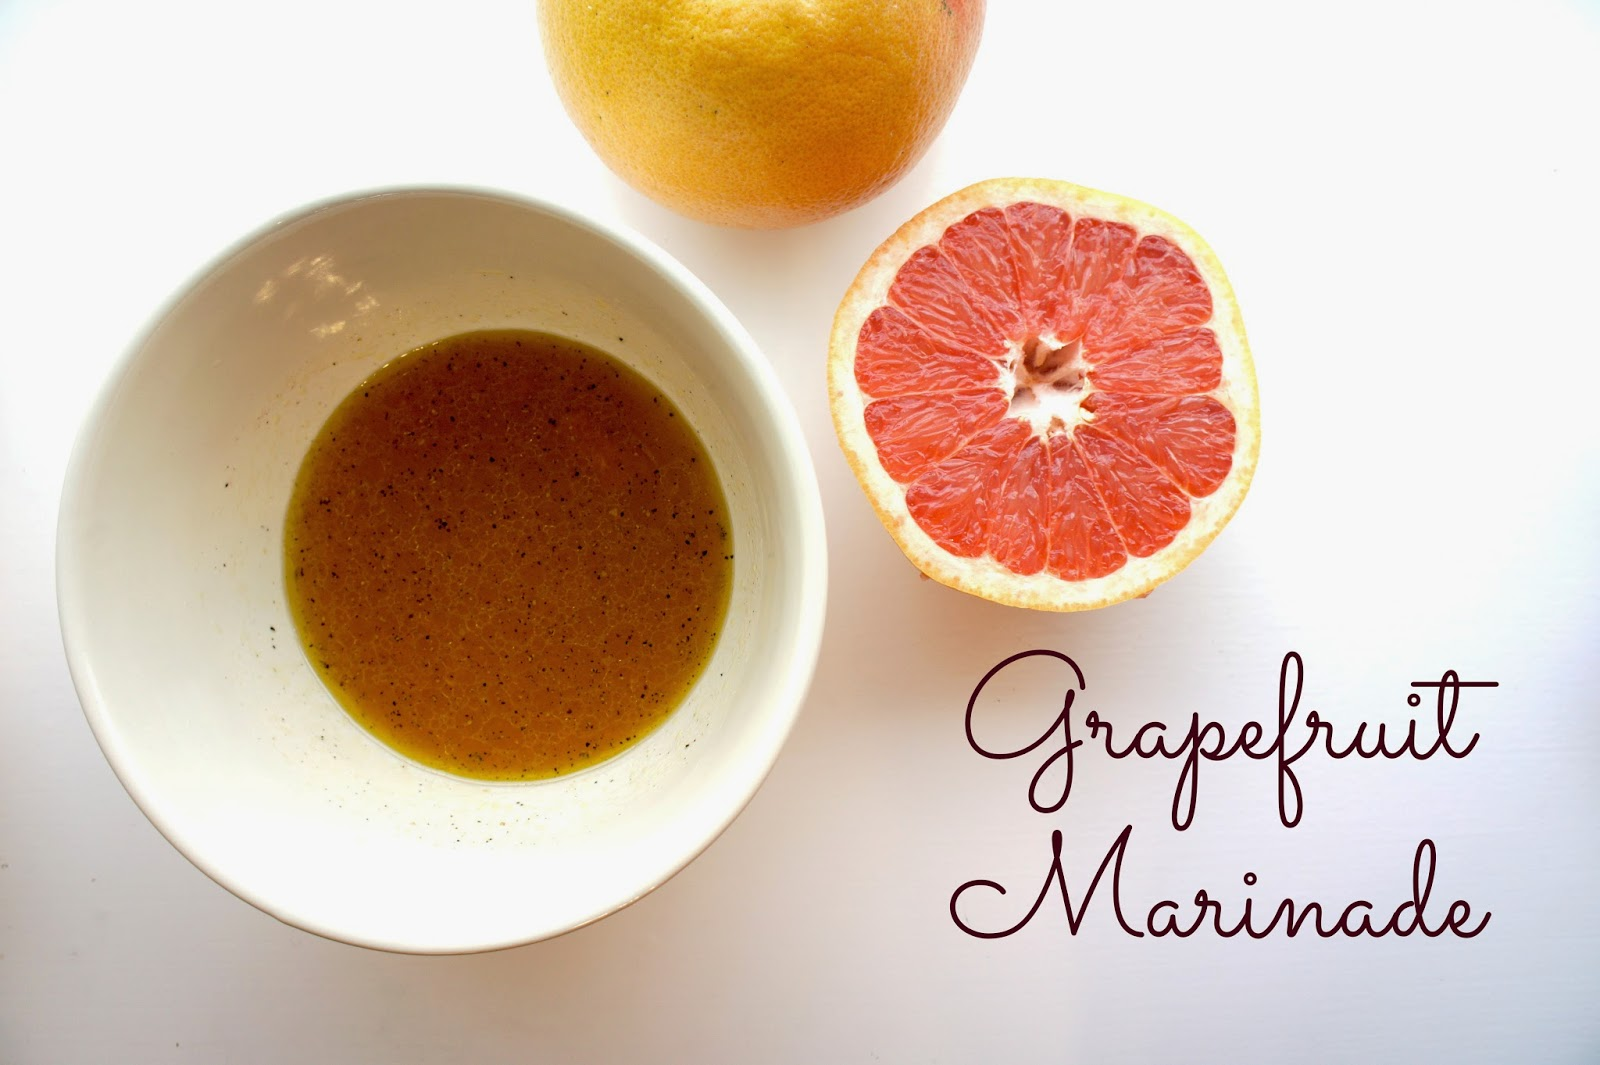 Grapefruit Marinade